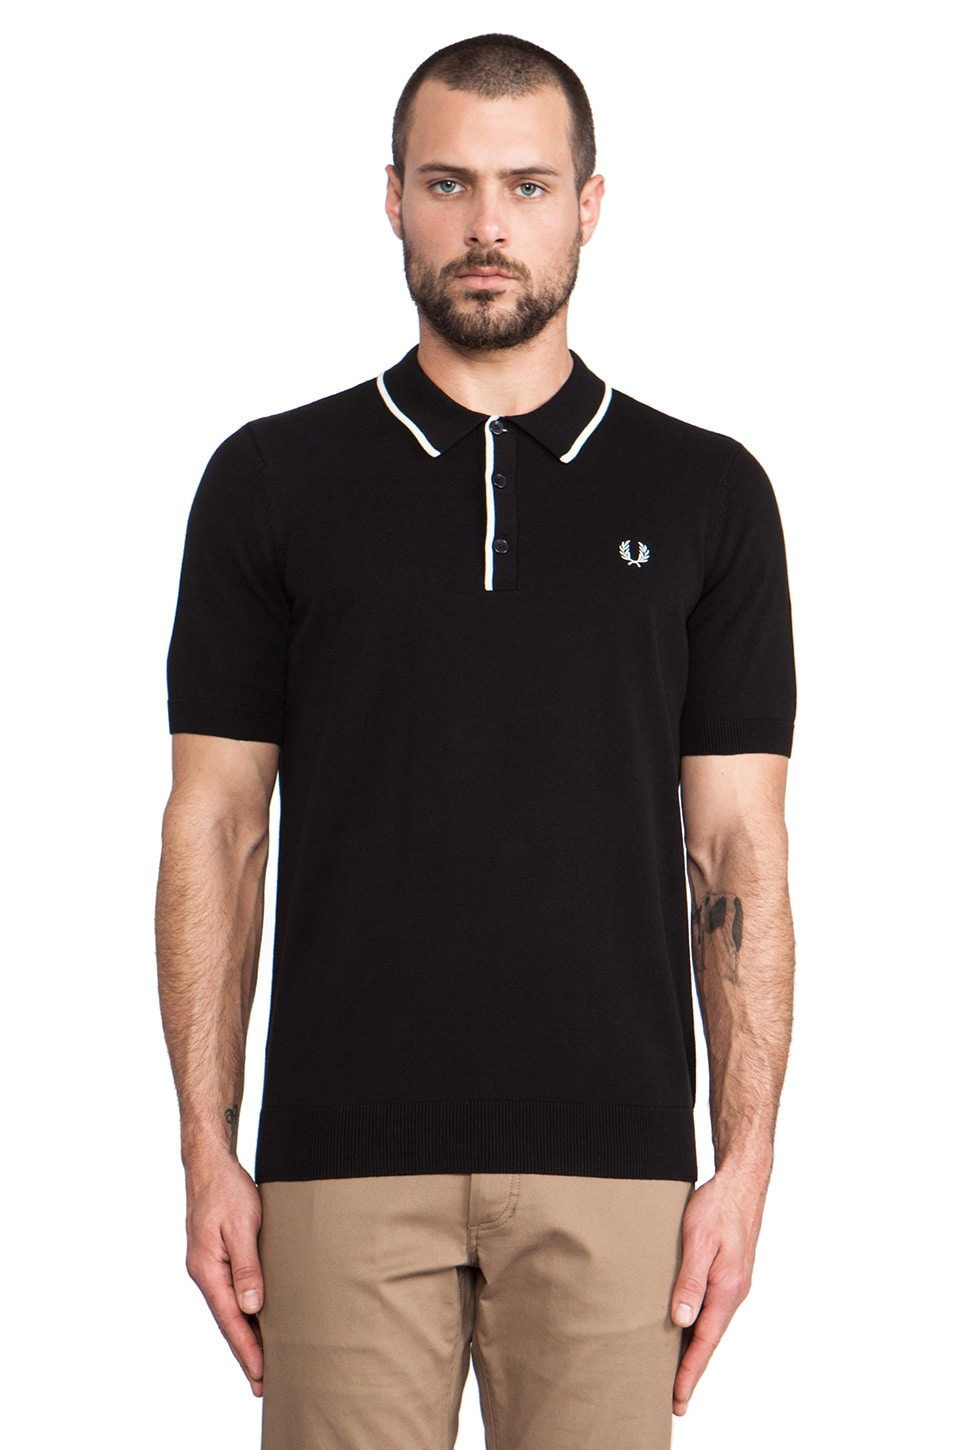 Fred Perry Classic Knitted Shirt in Black